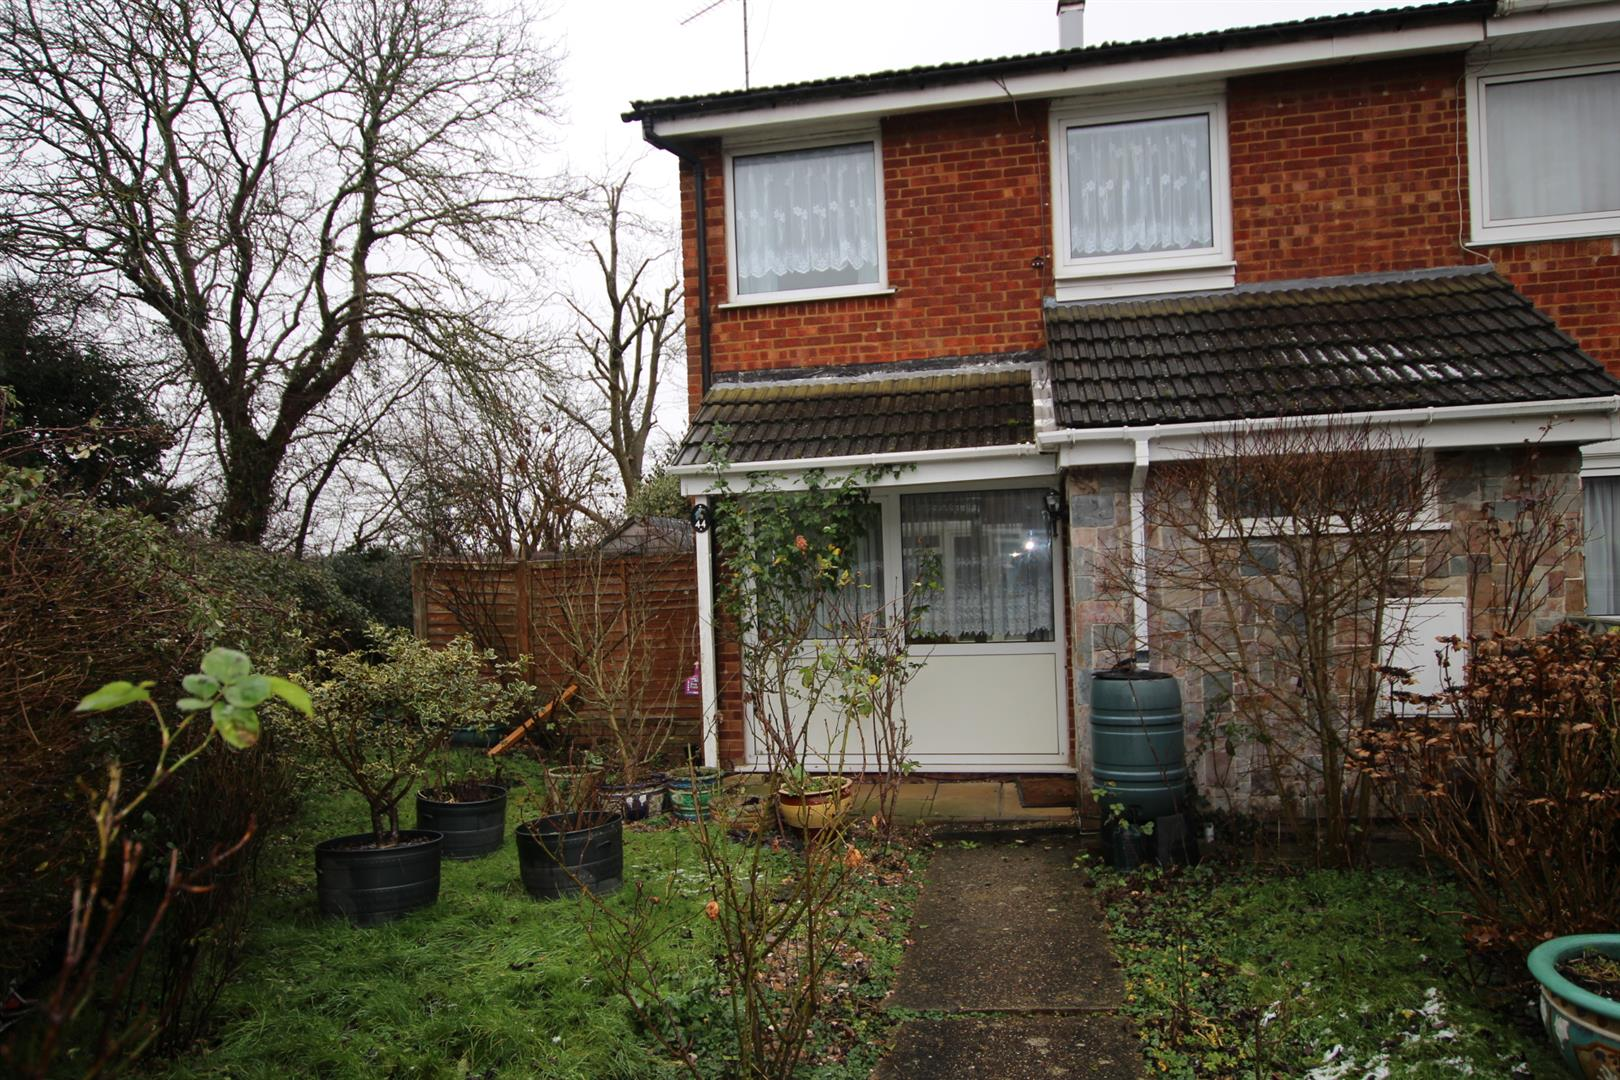 2 Bedrooms End Of Terrace House for sale in Grangeway, Houghton Regis, Dunstable